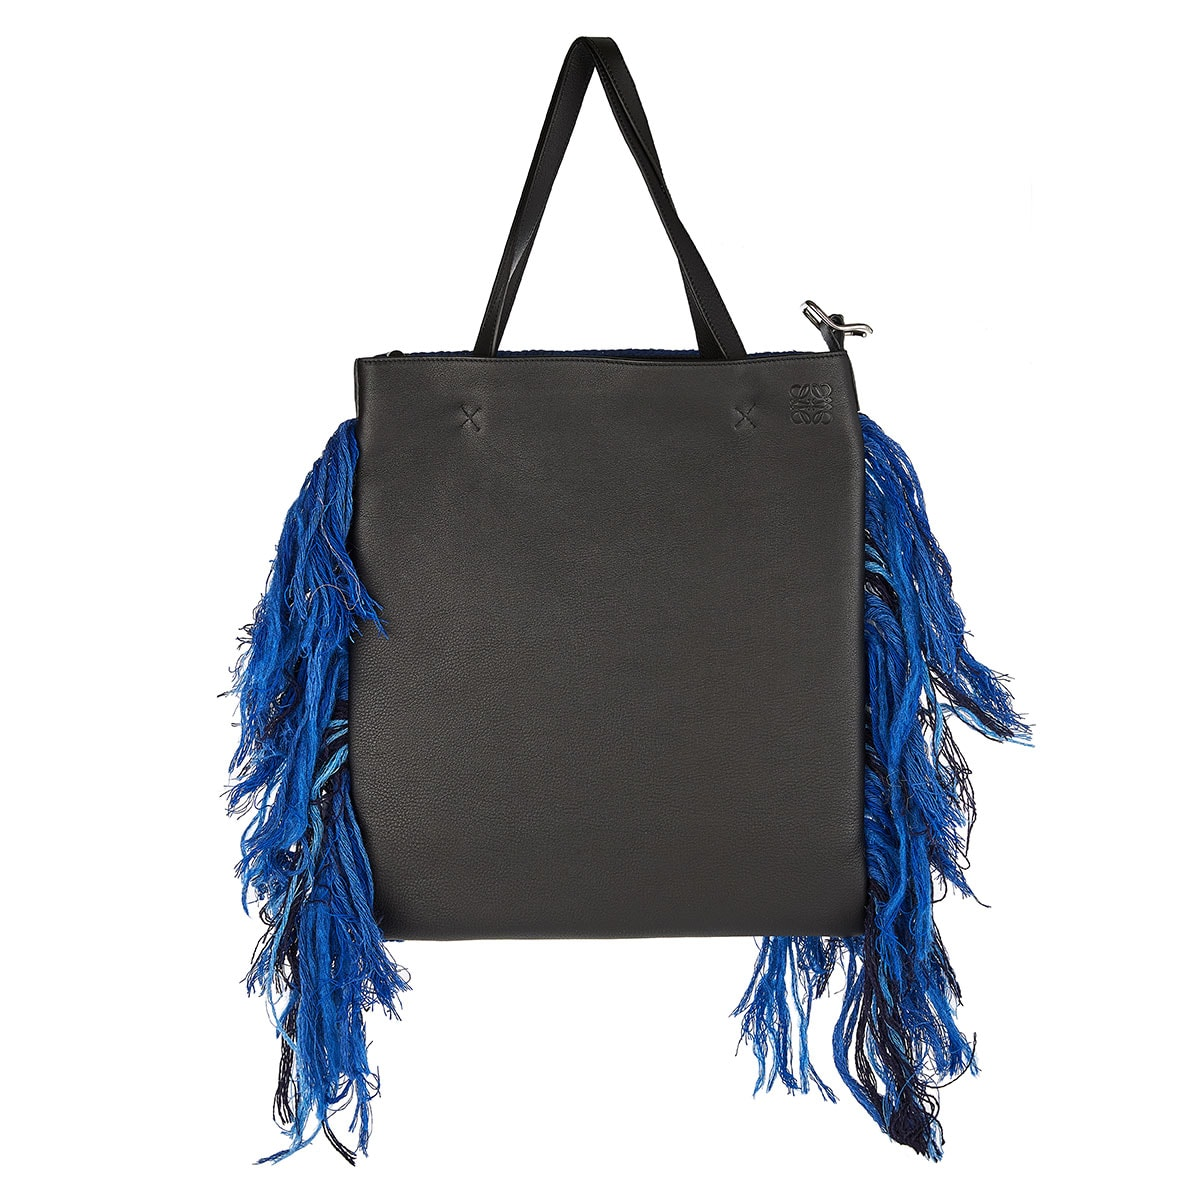 Dragon wool-embroidered leather tote